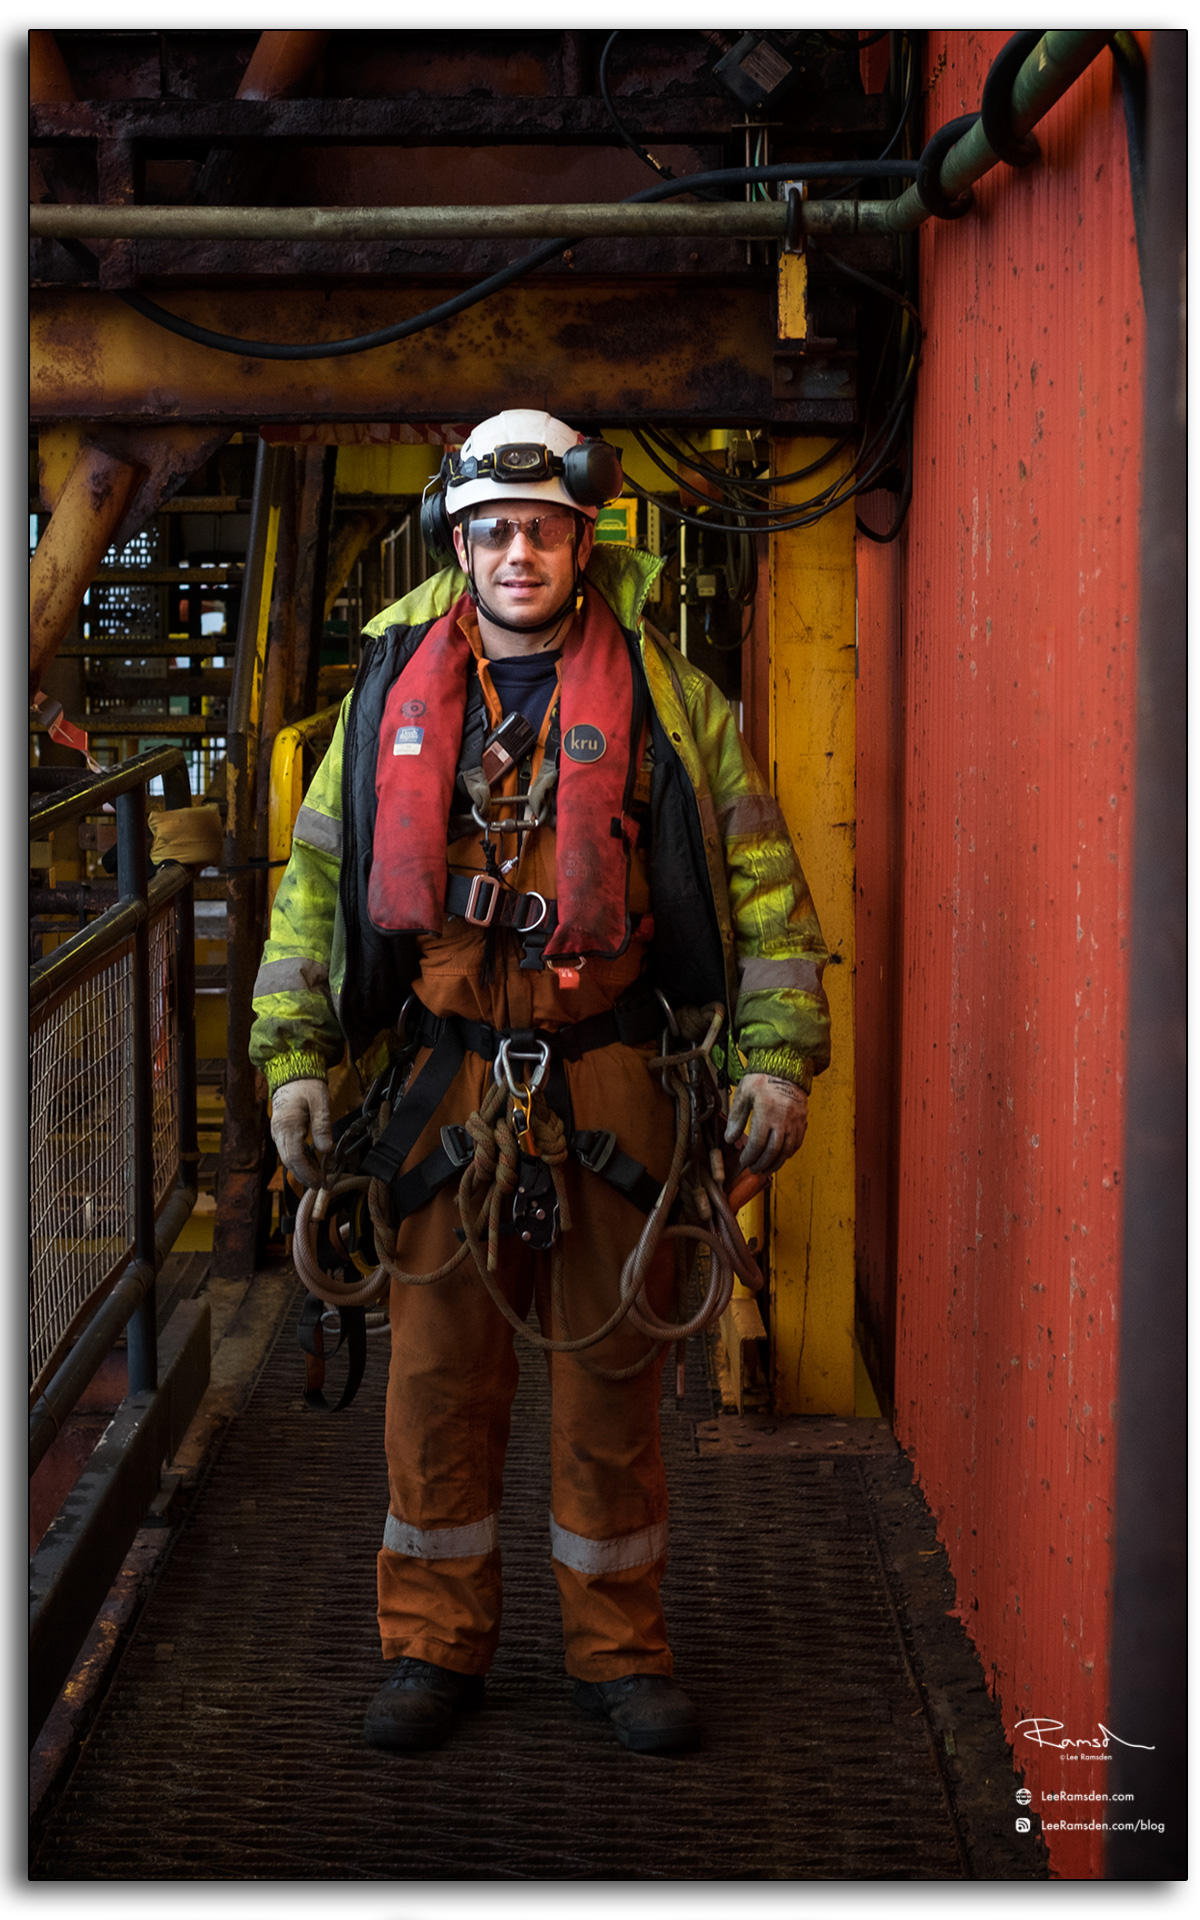 IRATA rope access technician equipment life jacket offshore life at sea Lee Ramsden